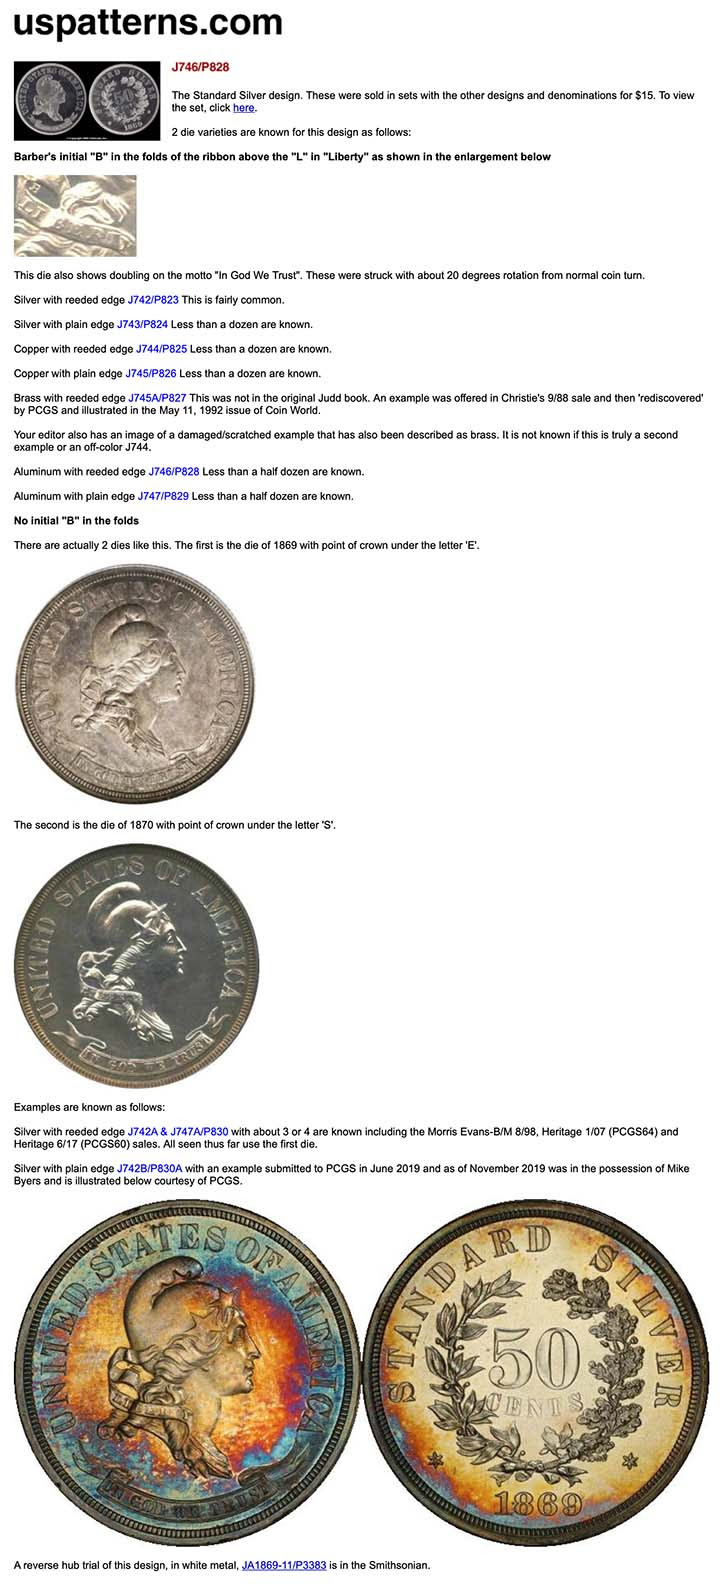 uspatters.com screen grab for standard silver half dollar J-746b. Courtesy Mike Byers